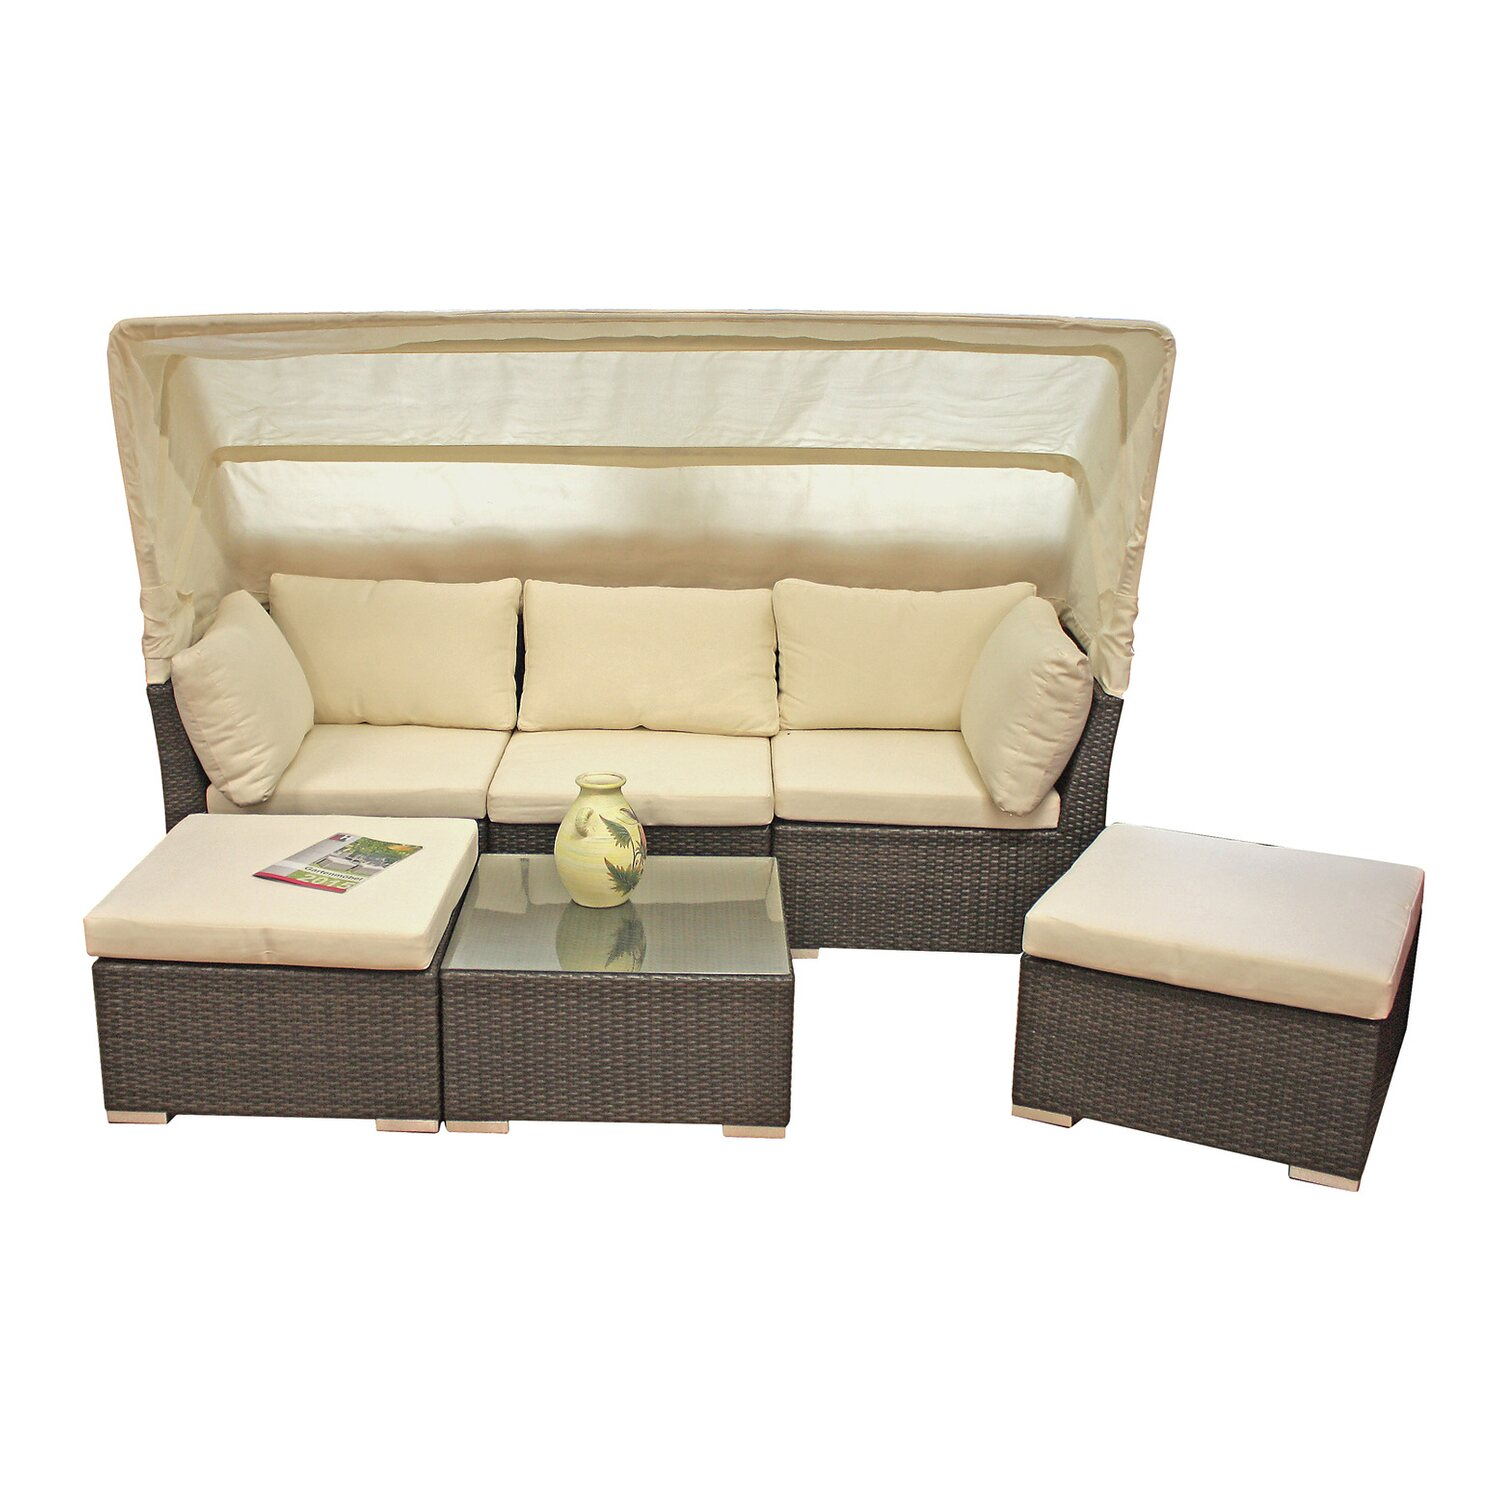 garden pleasure lounge sofa santiago kaufen bei obi. Black Bedroom Furniture Sets. Home Design Ideas